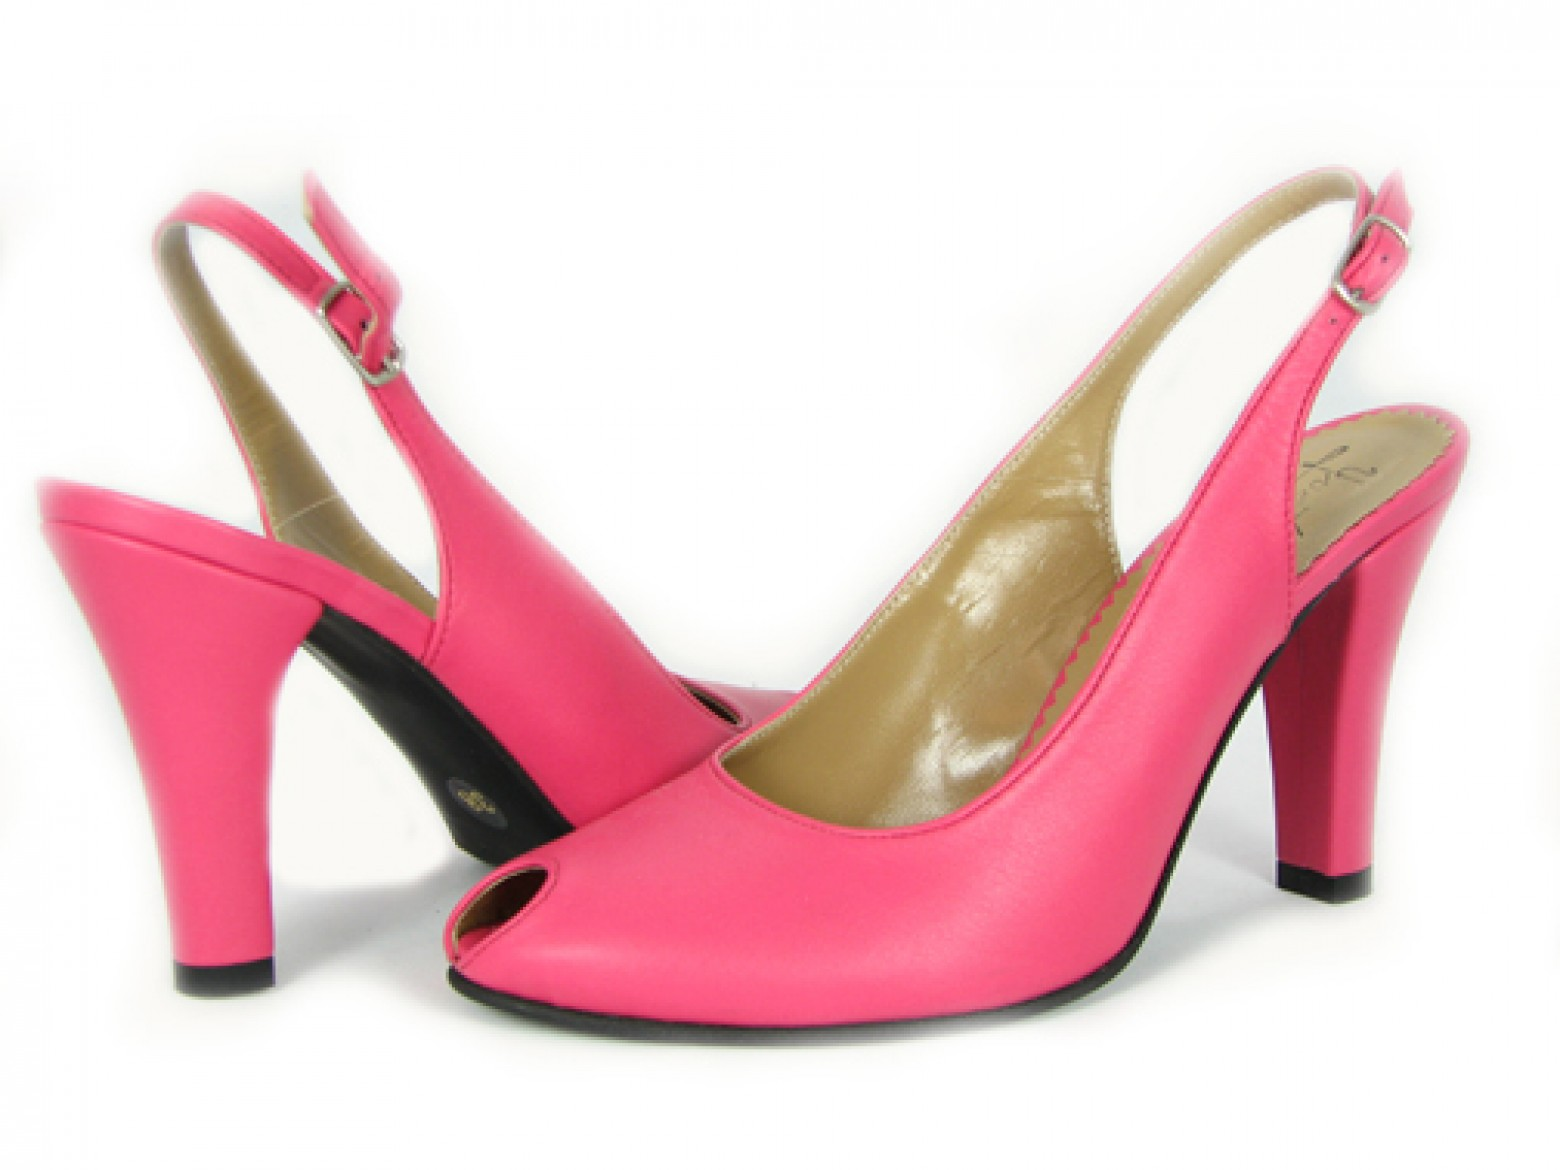 SANDALE CHIC PINK